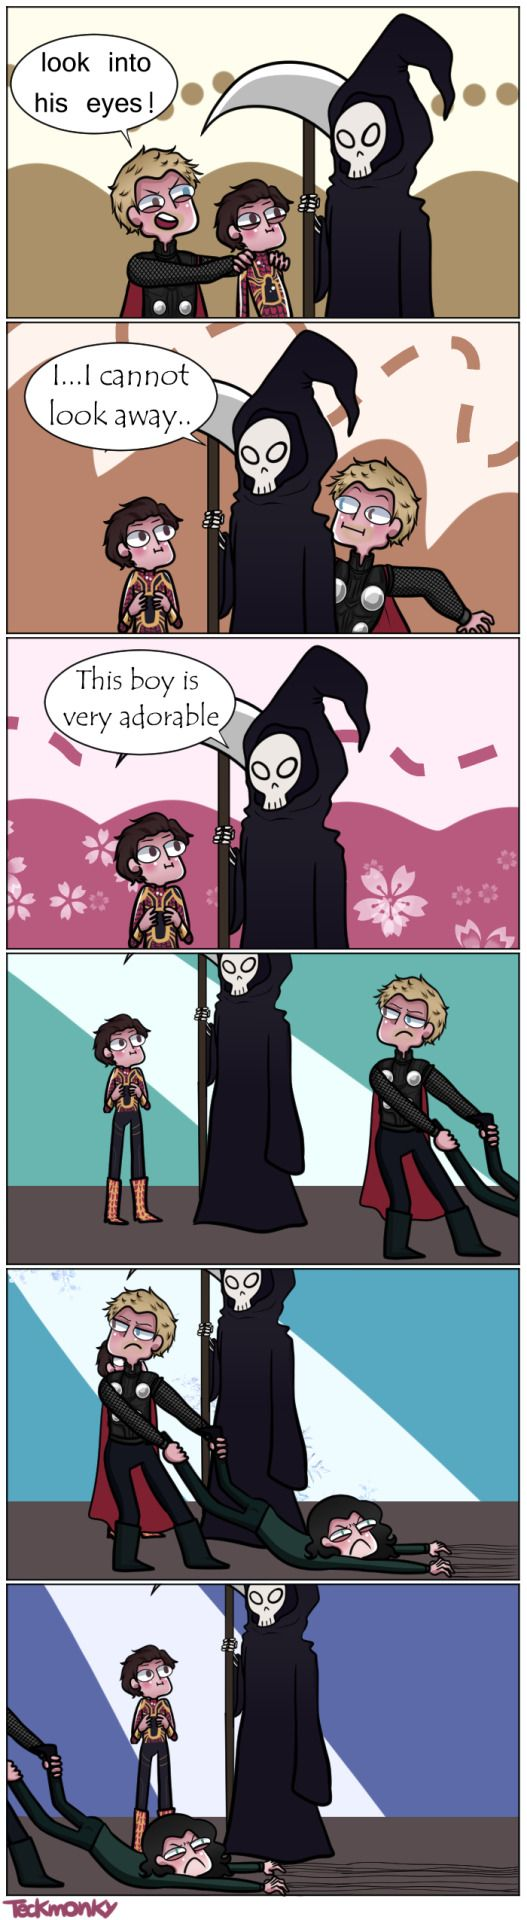 Pin by Graphic Assassin on go away!!!! | Marvel, Marvel